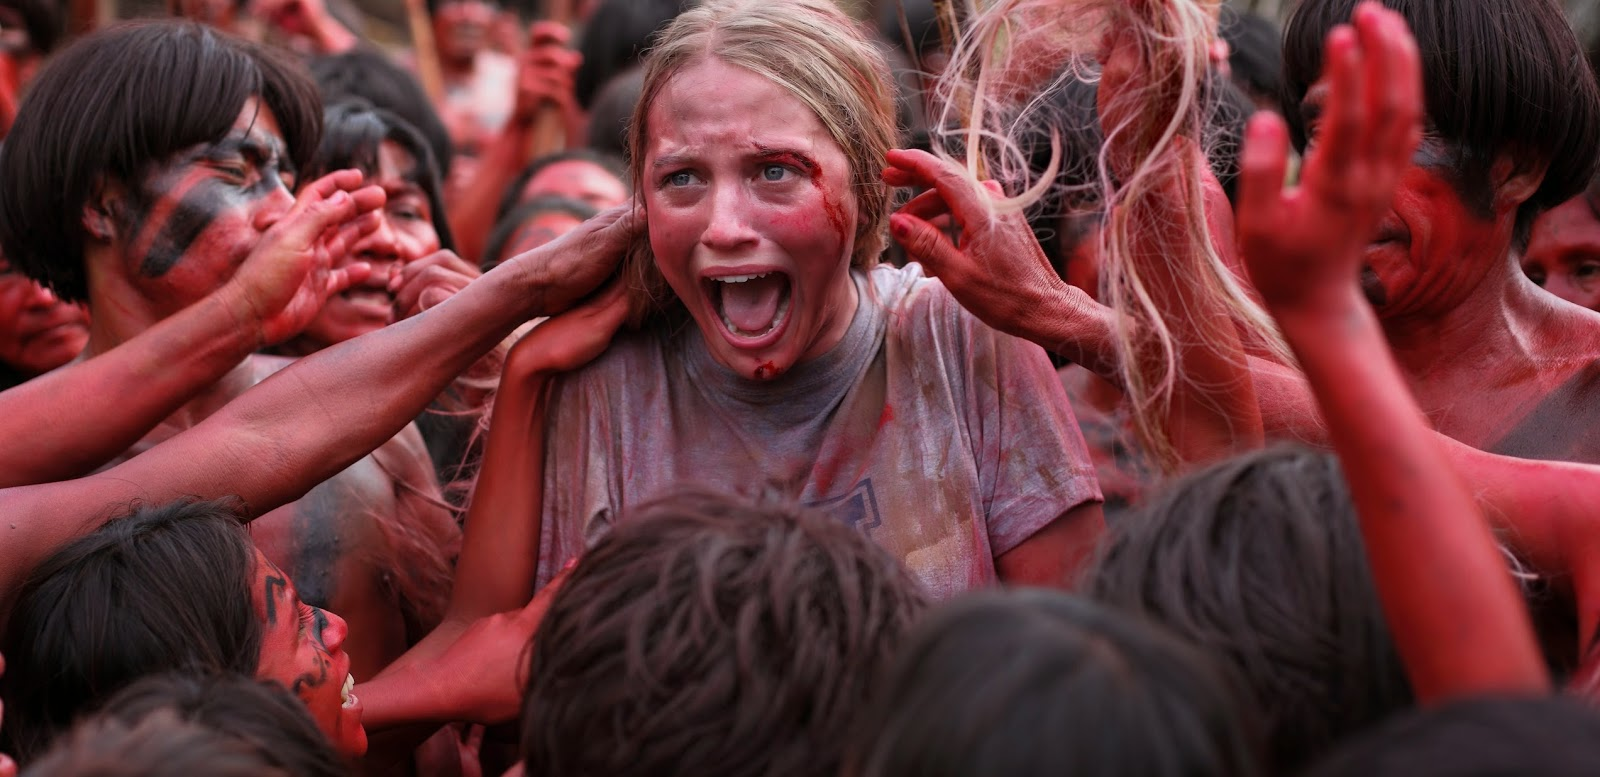 Confira o teaser trailer do terror canibal The Green Inferno, de Eli Roth